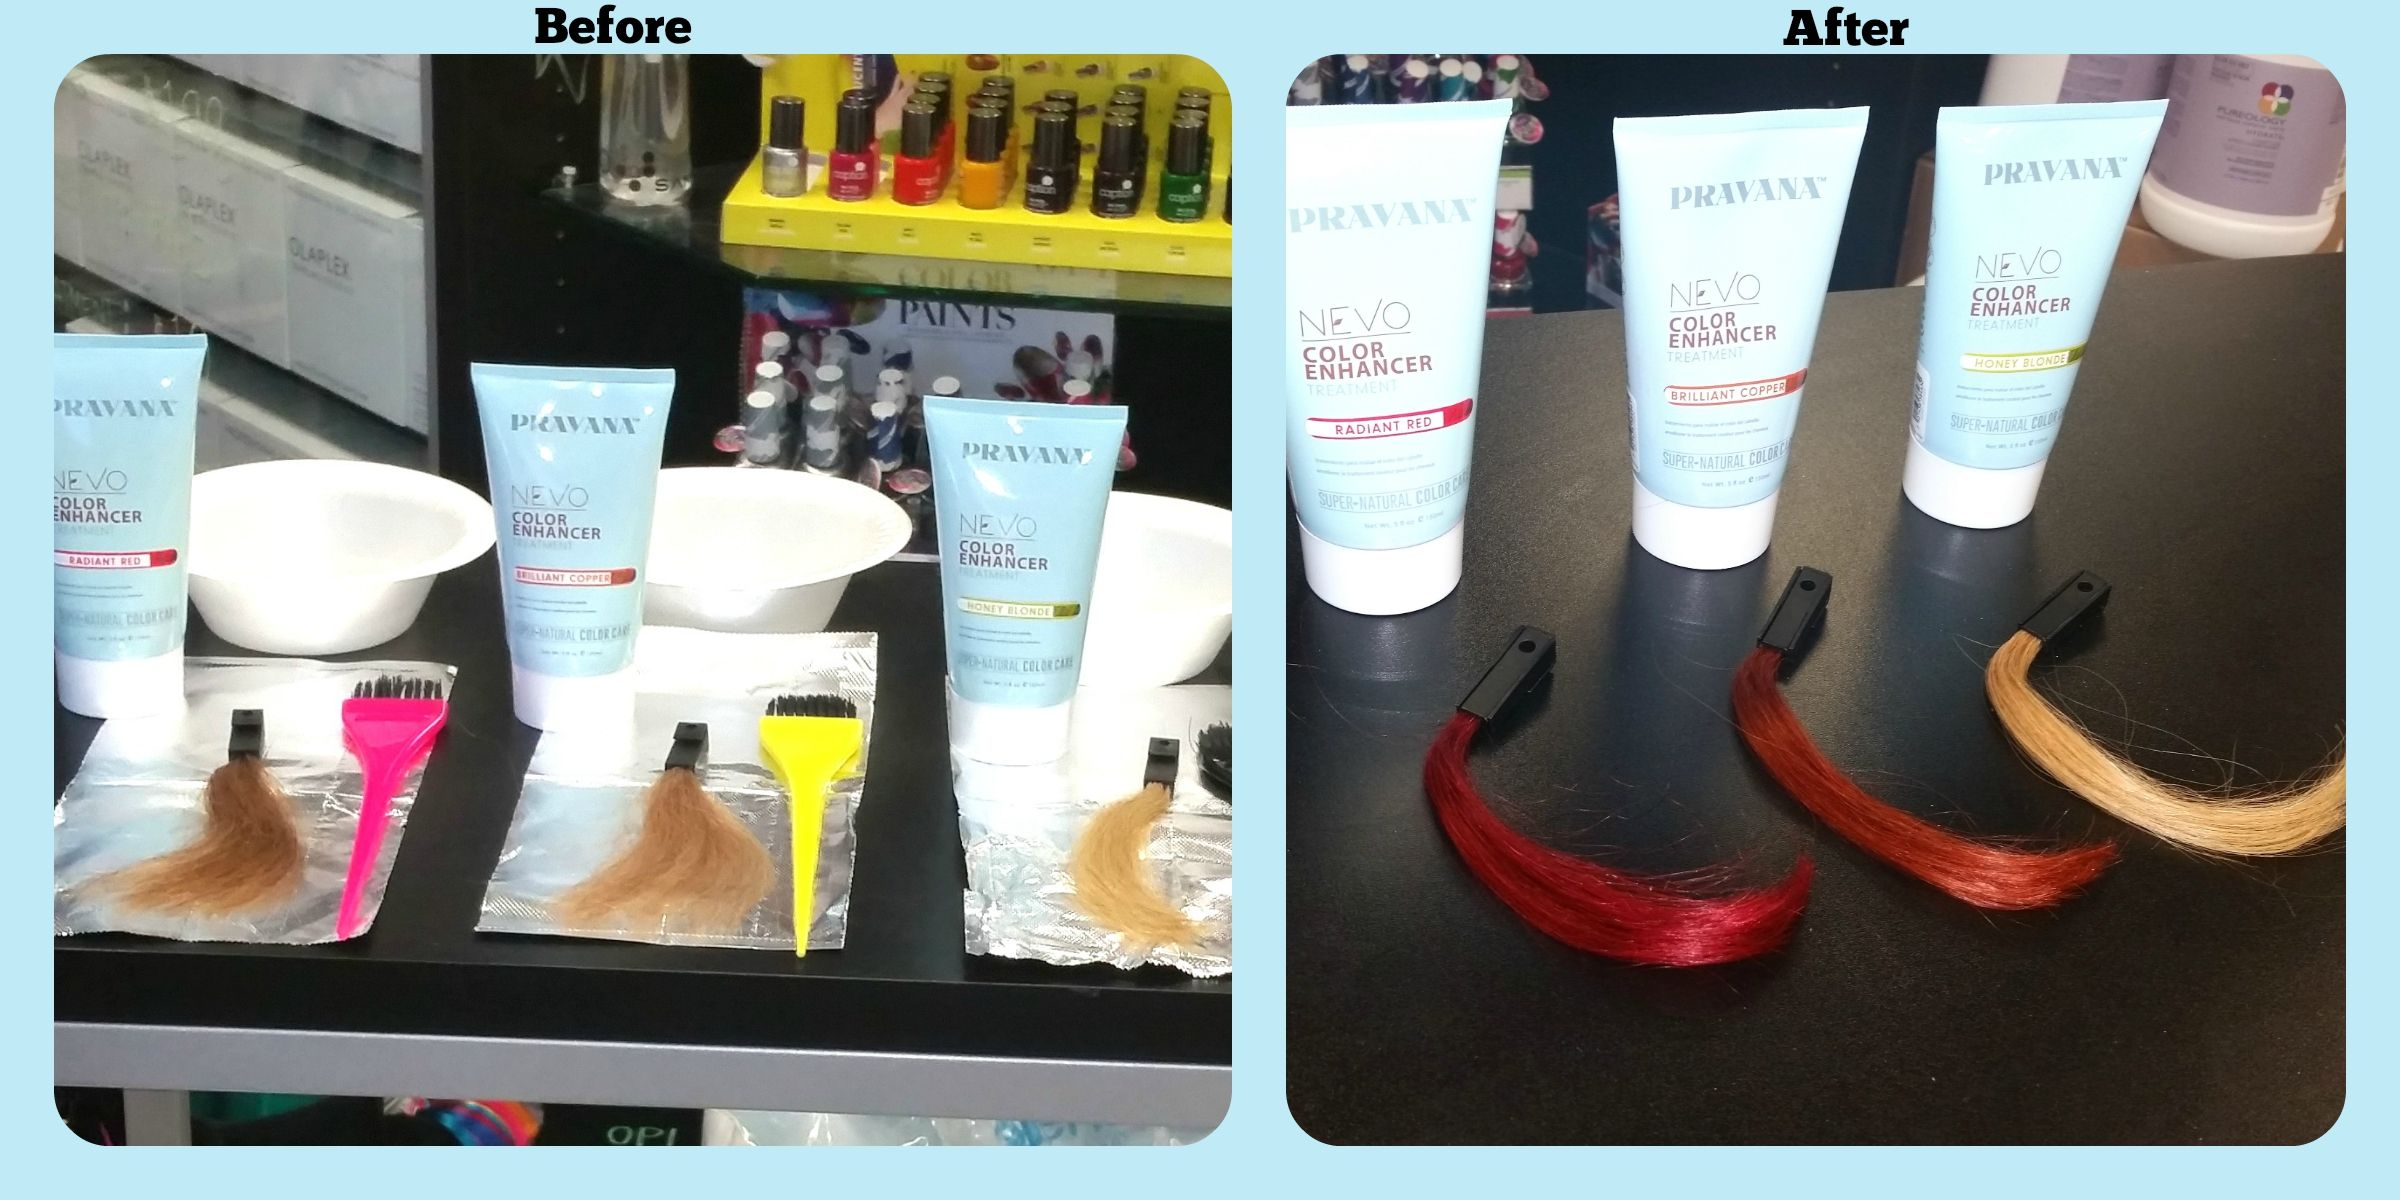 Do You Have Hair That Never Holds Red Or Copper Pravana Nevo